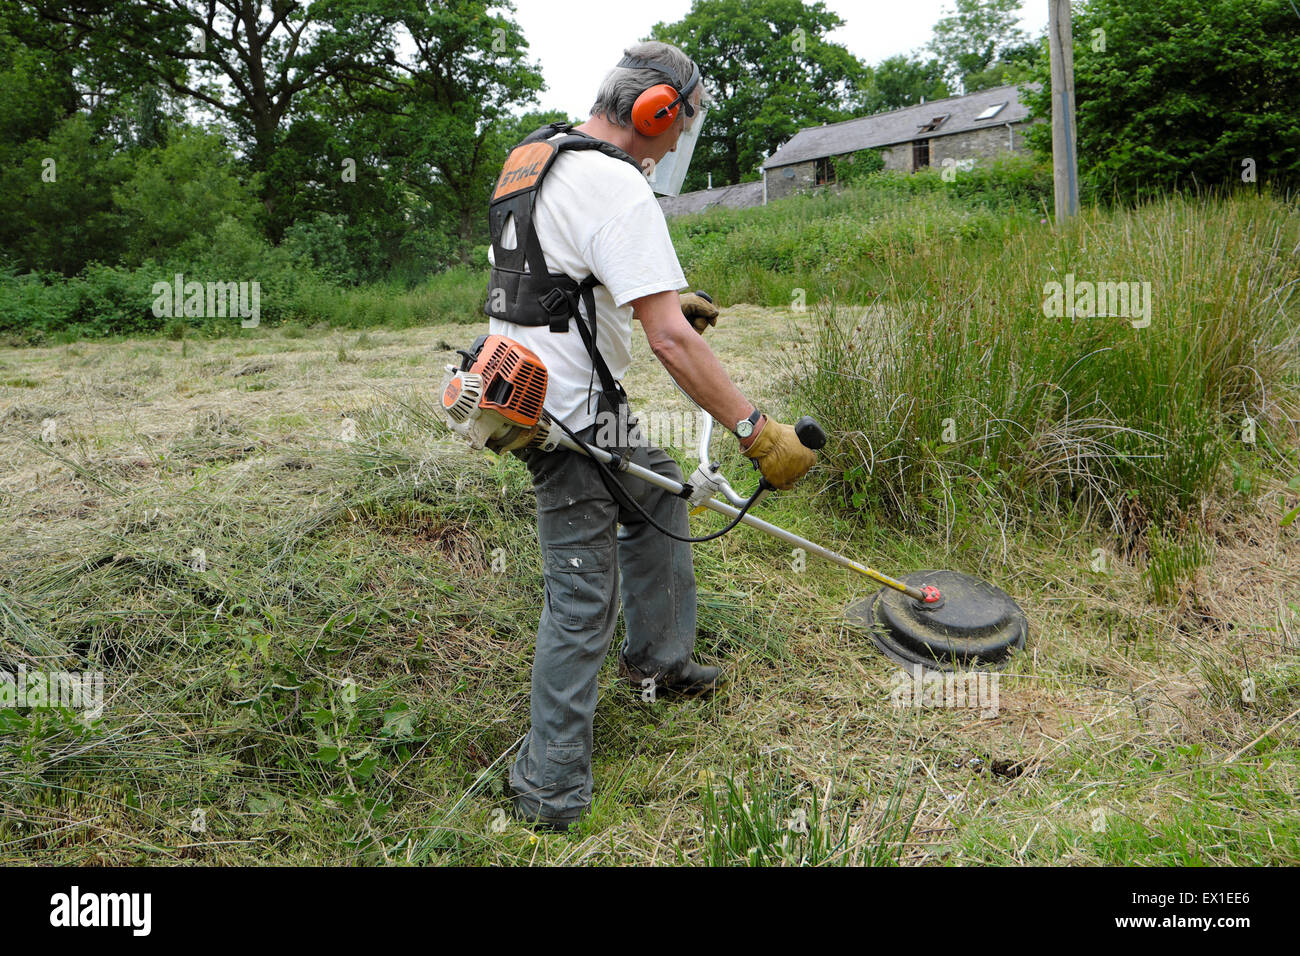 A man wearing safety equipment strimming reeds in a field on a smallholding in Carmarthenshire Wales UK  KATHY DEWITT - Stock Image